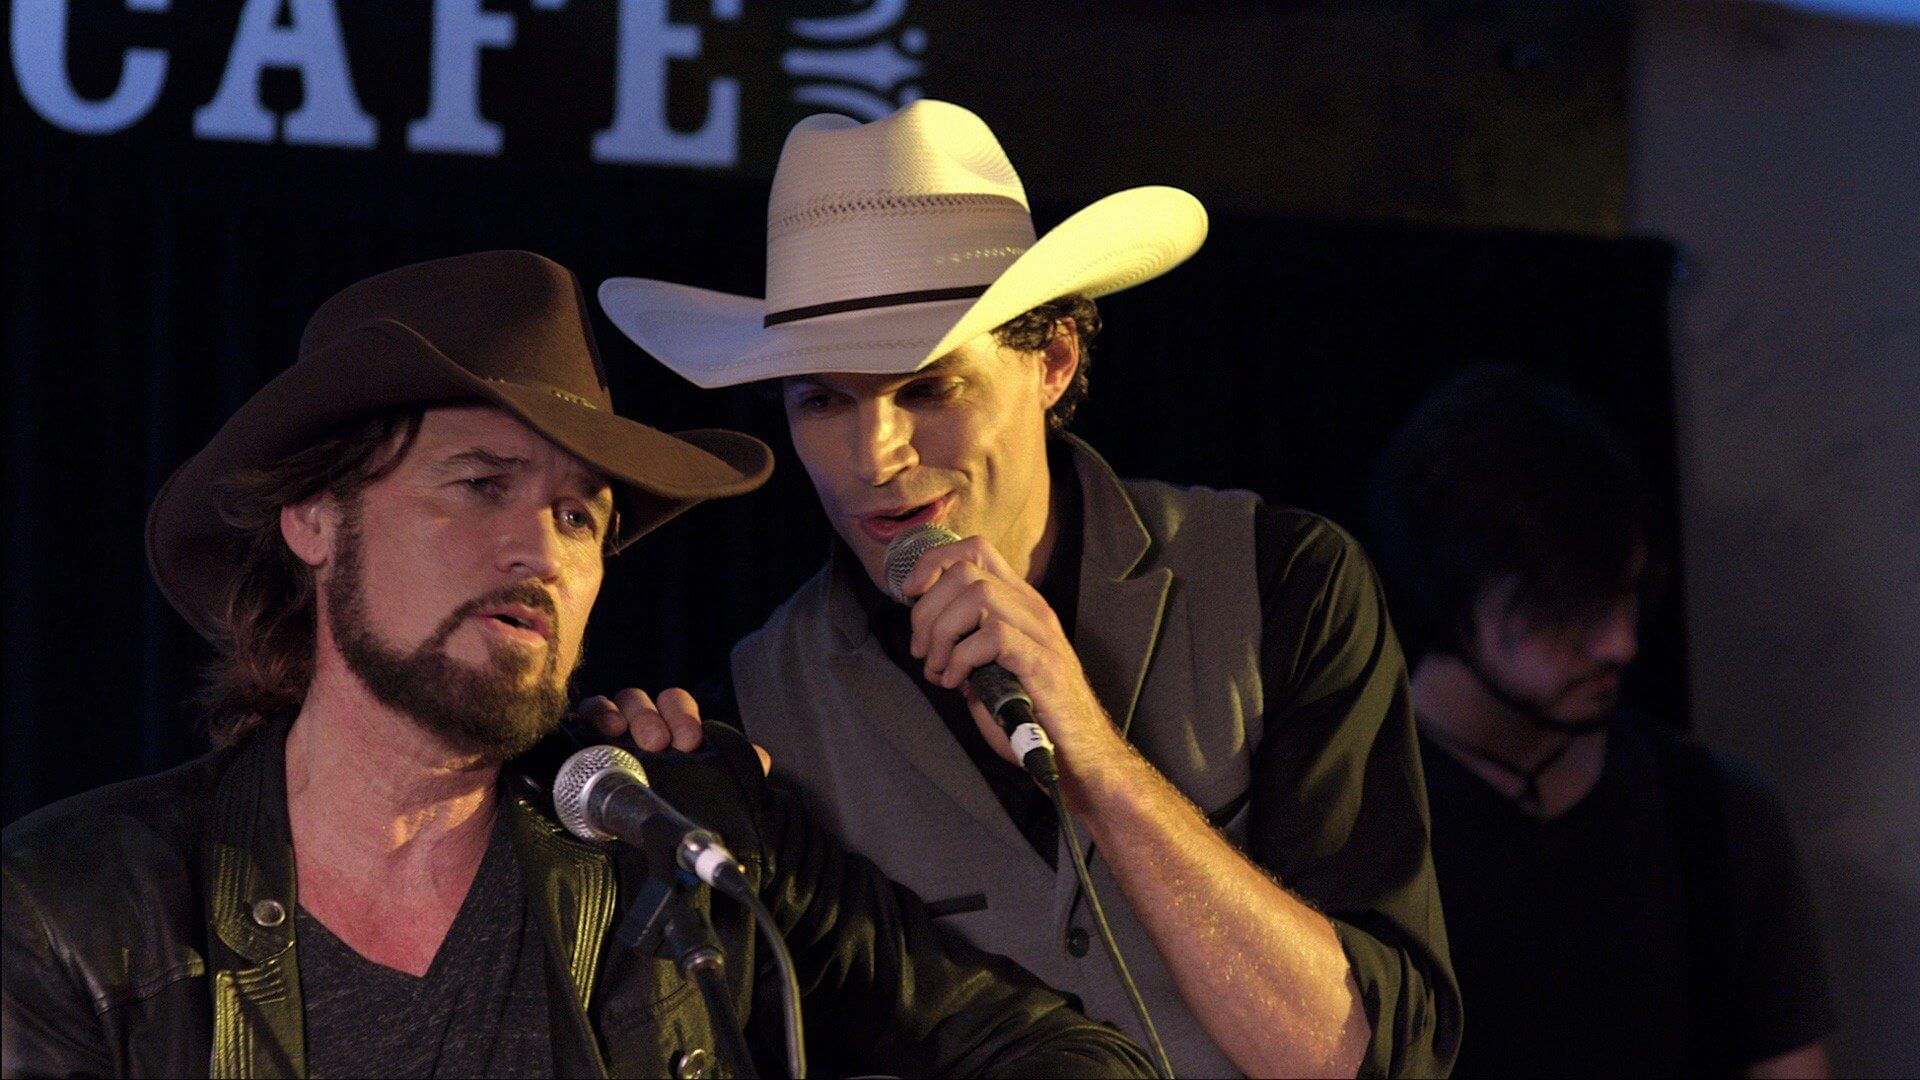 """GAE LAUNCH """"LIKE A COUNTRY SONG"""" VIA CABLE & SATELLITE VOD"""